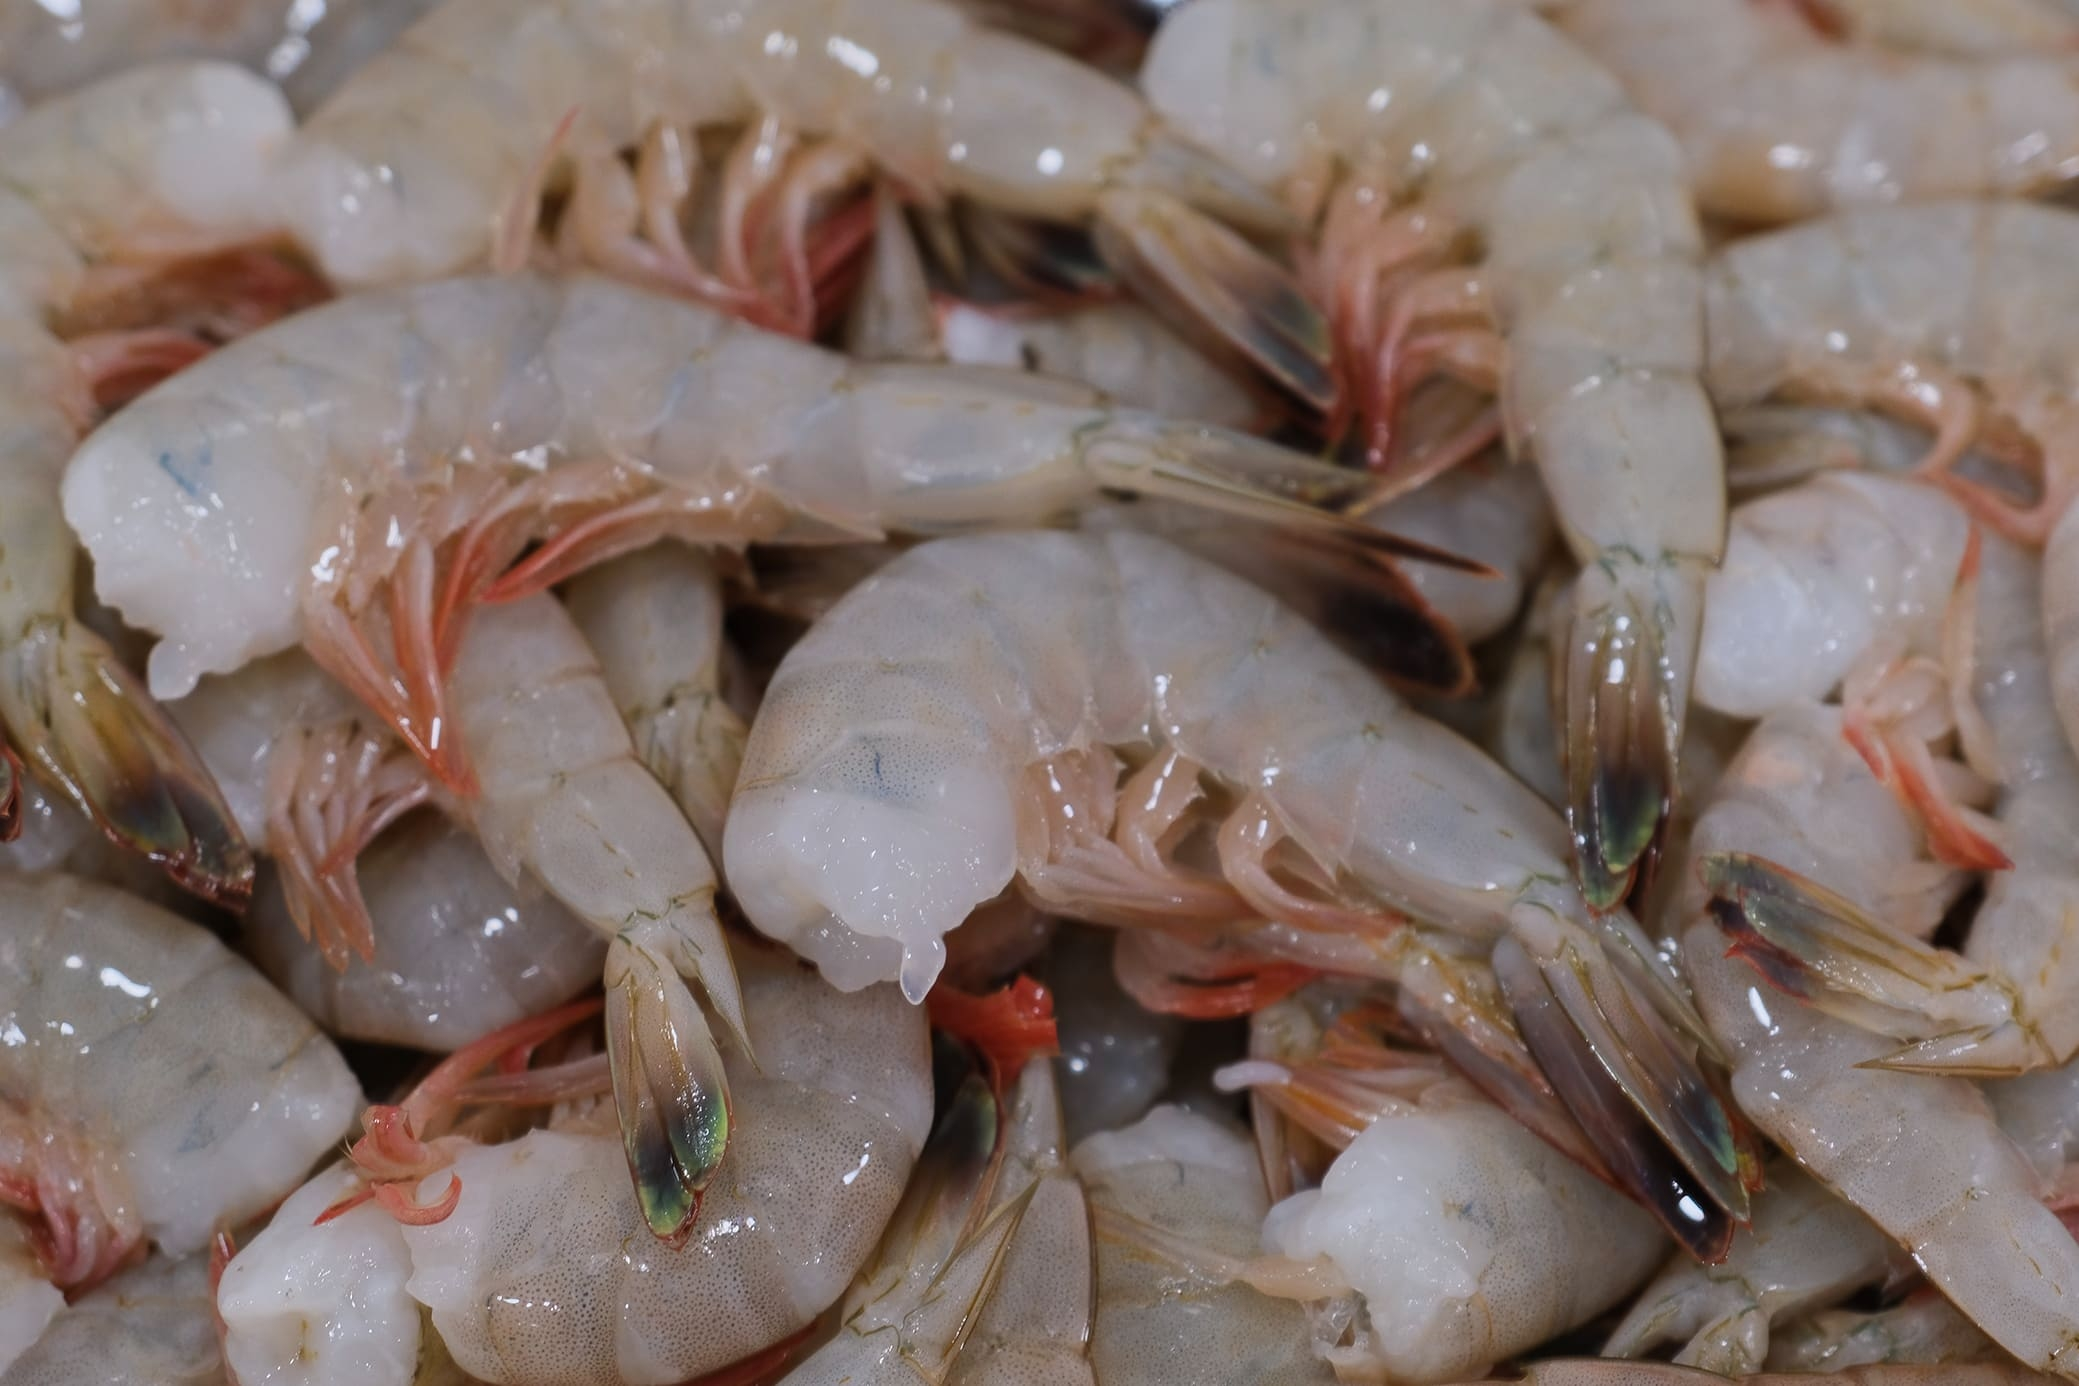 Fresh From Florida white shrimp caught off Ponce Inlet by a local shrimper